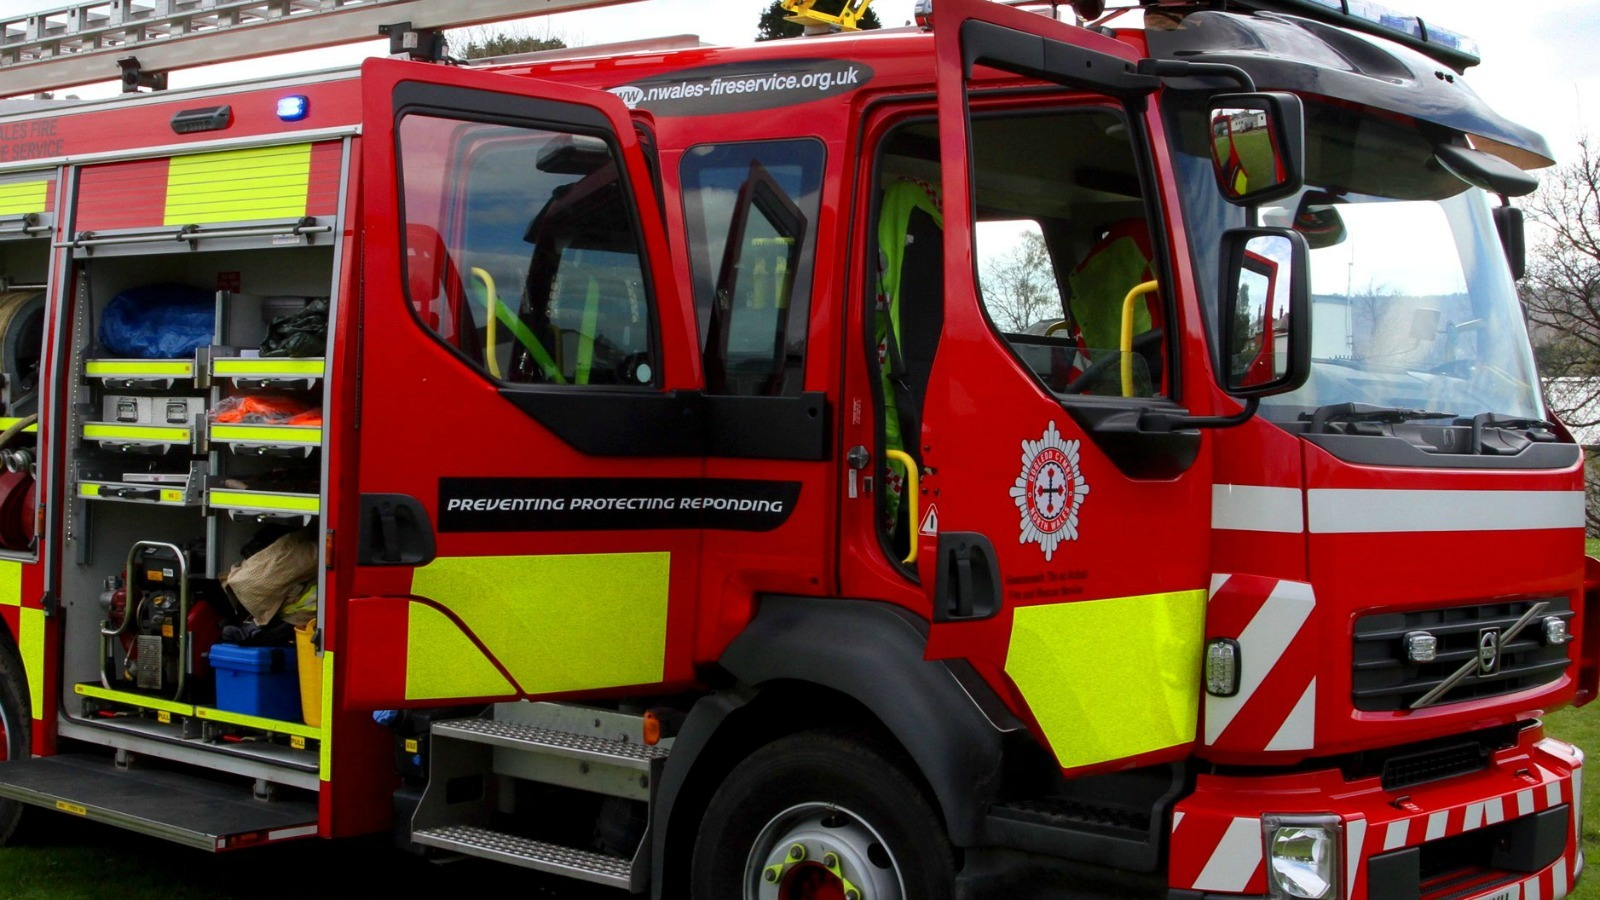 Welsh firefighters are becoming increasingly involved in non-fire callouts